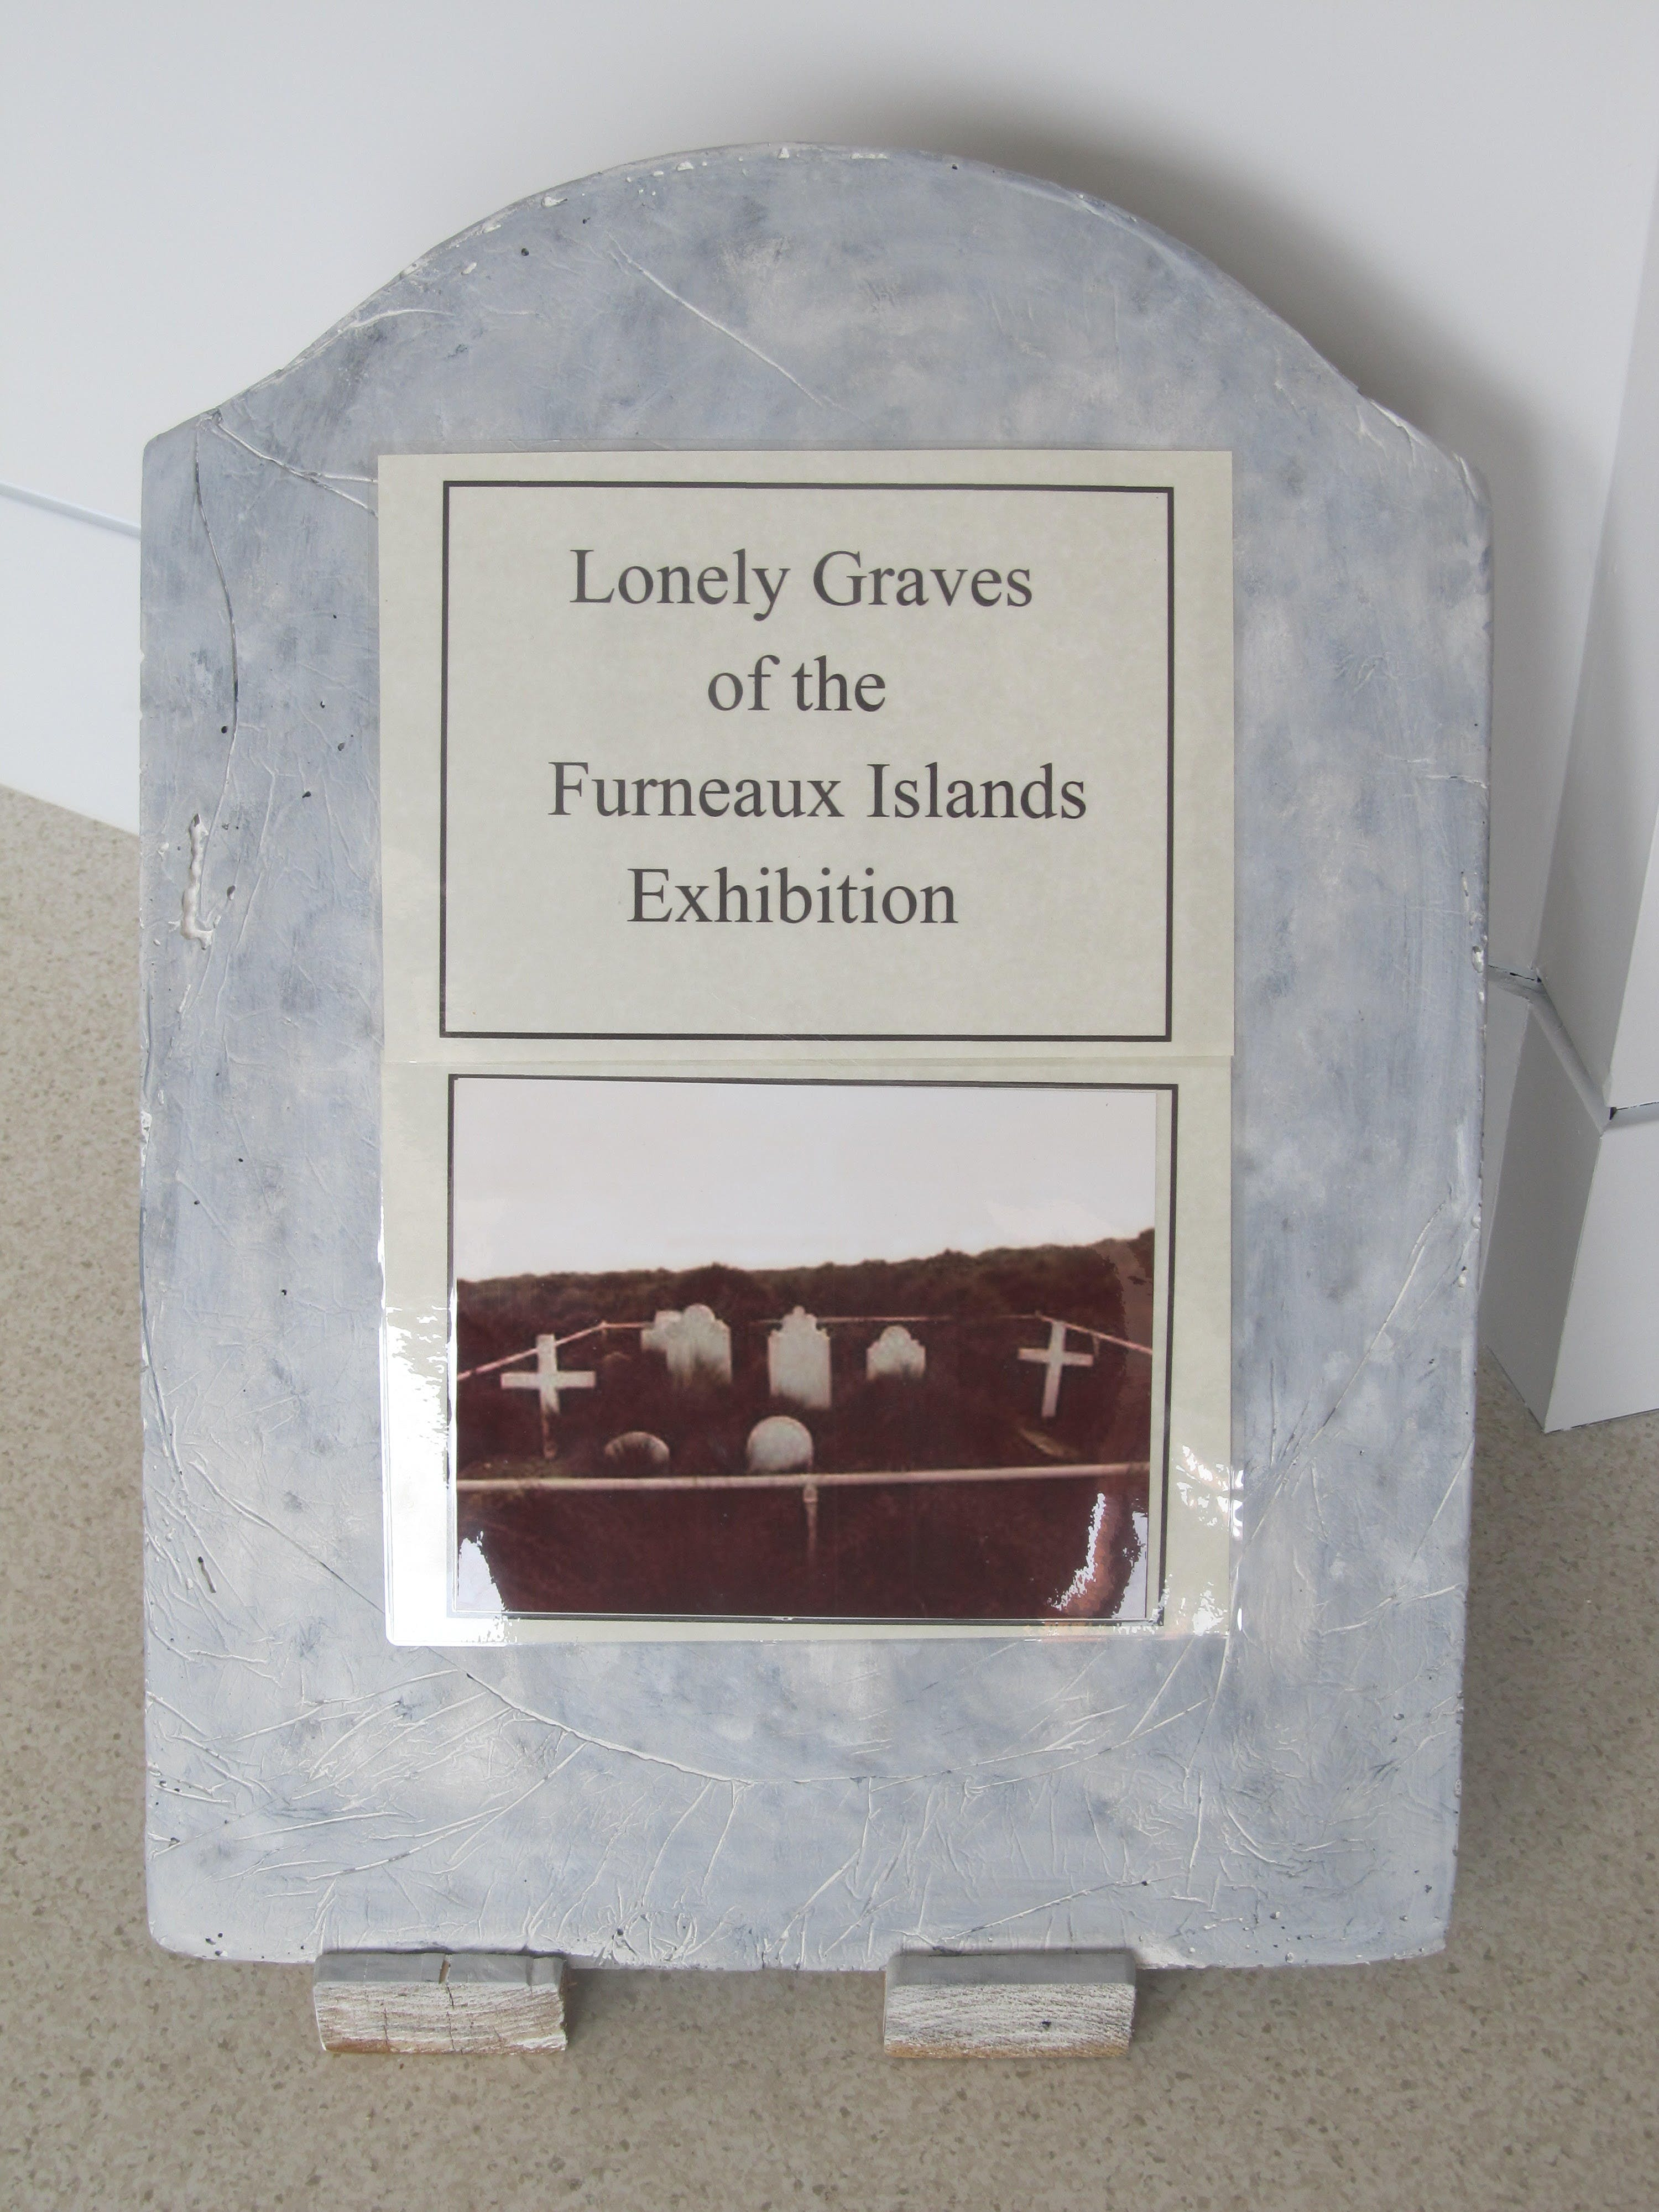 Lonely Graves of the Furneaux Islands Exhibition - St Kilda Accommodation